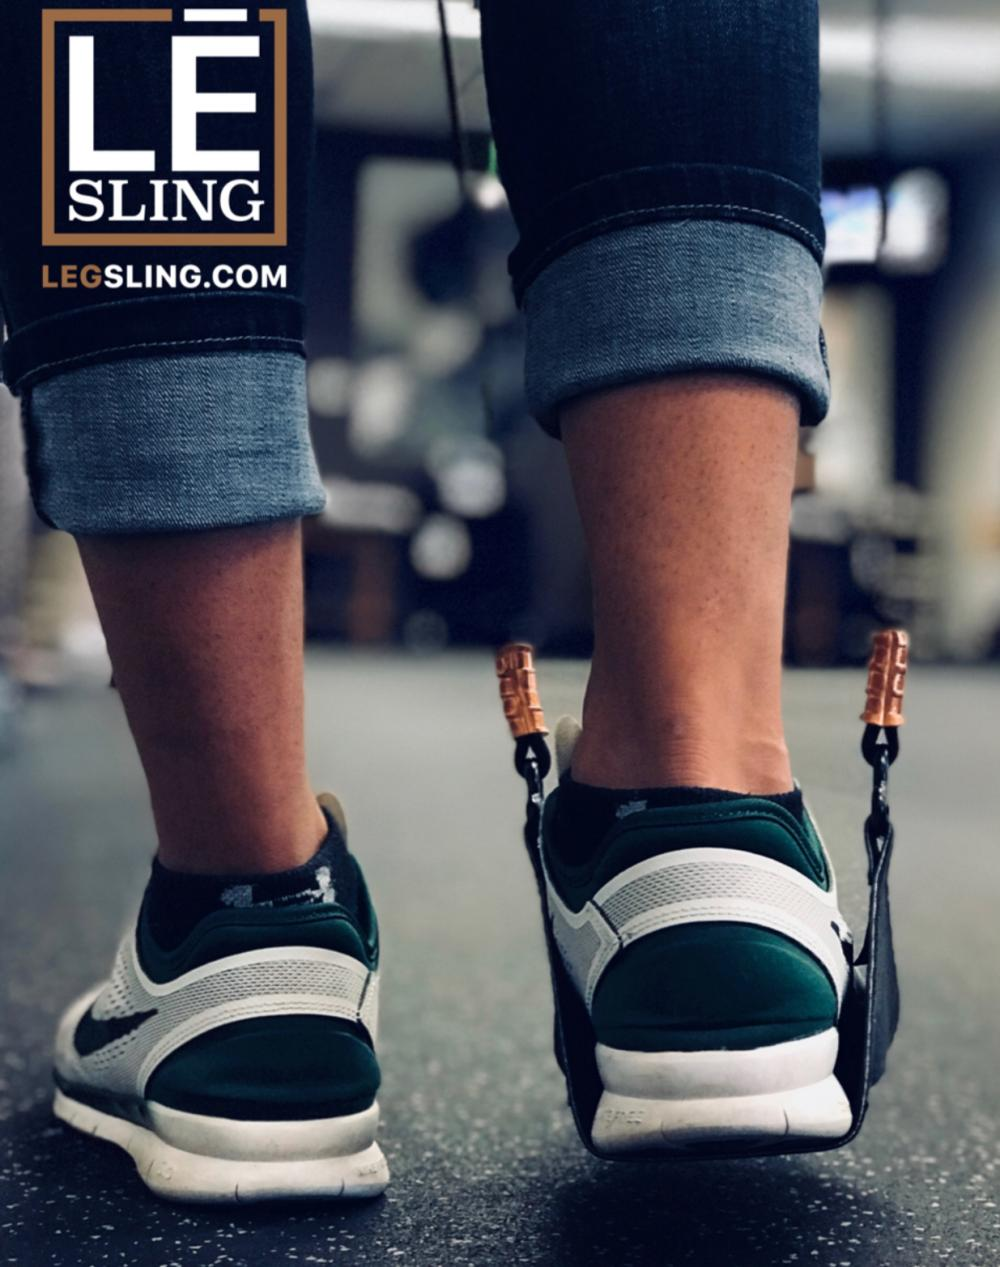 LE Sling Lower Extremity Sling (Sizes: S/M, L/XL & Youth)